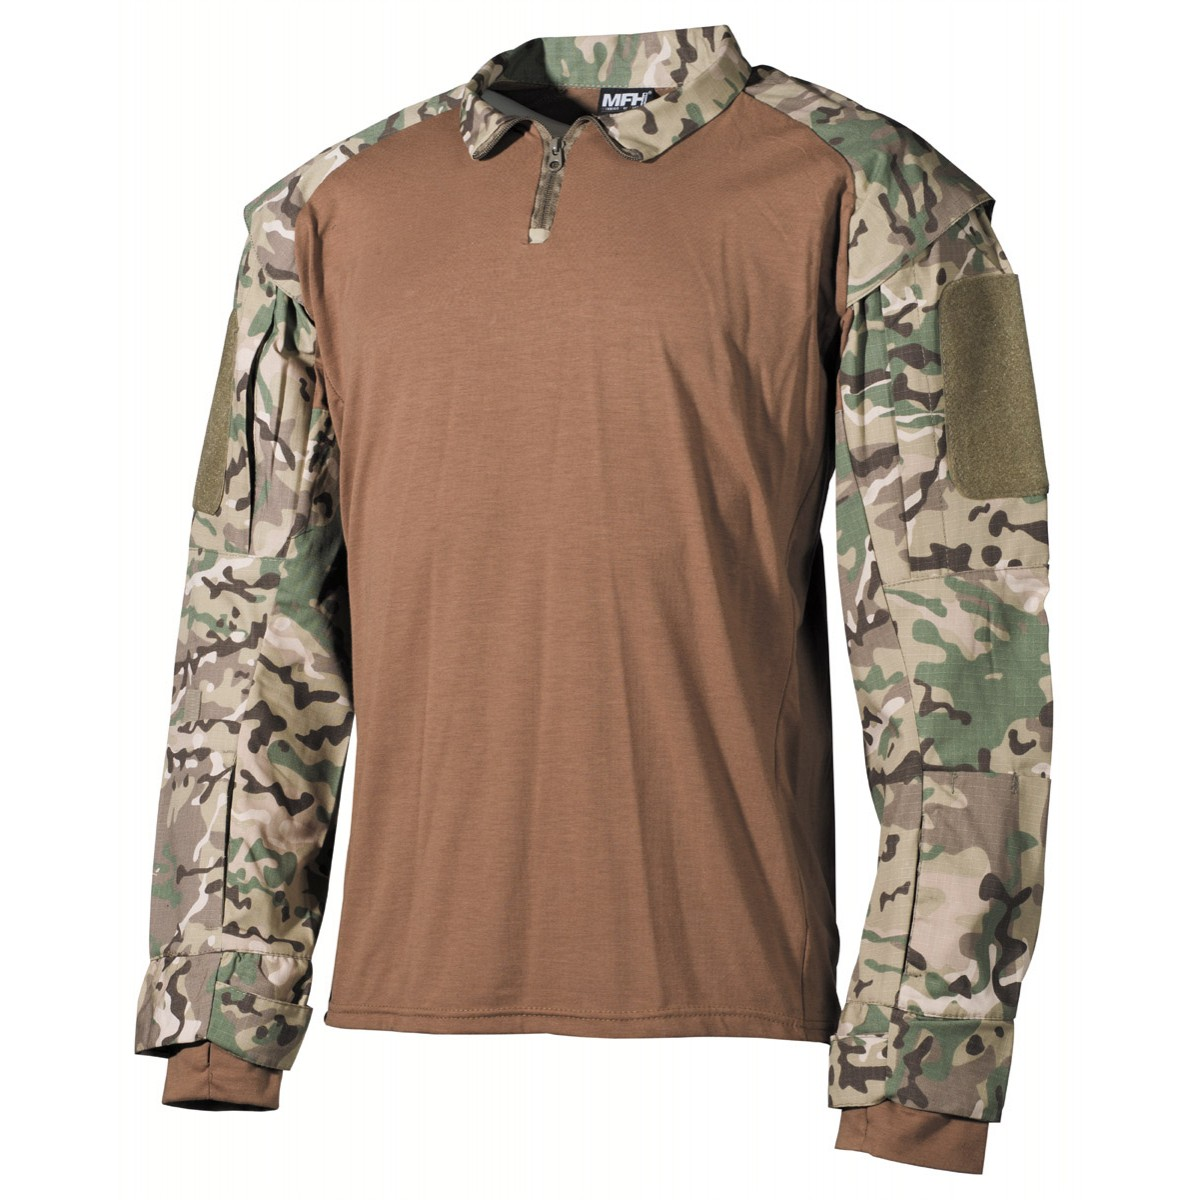 Tactical Military US Battle UBACS T-Shirt - Multicam